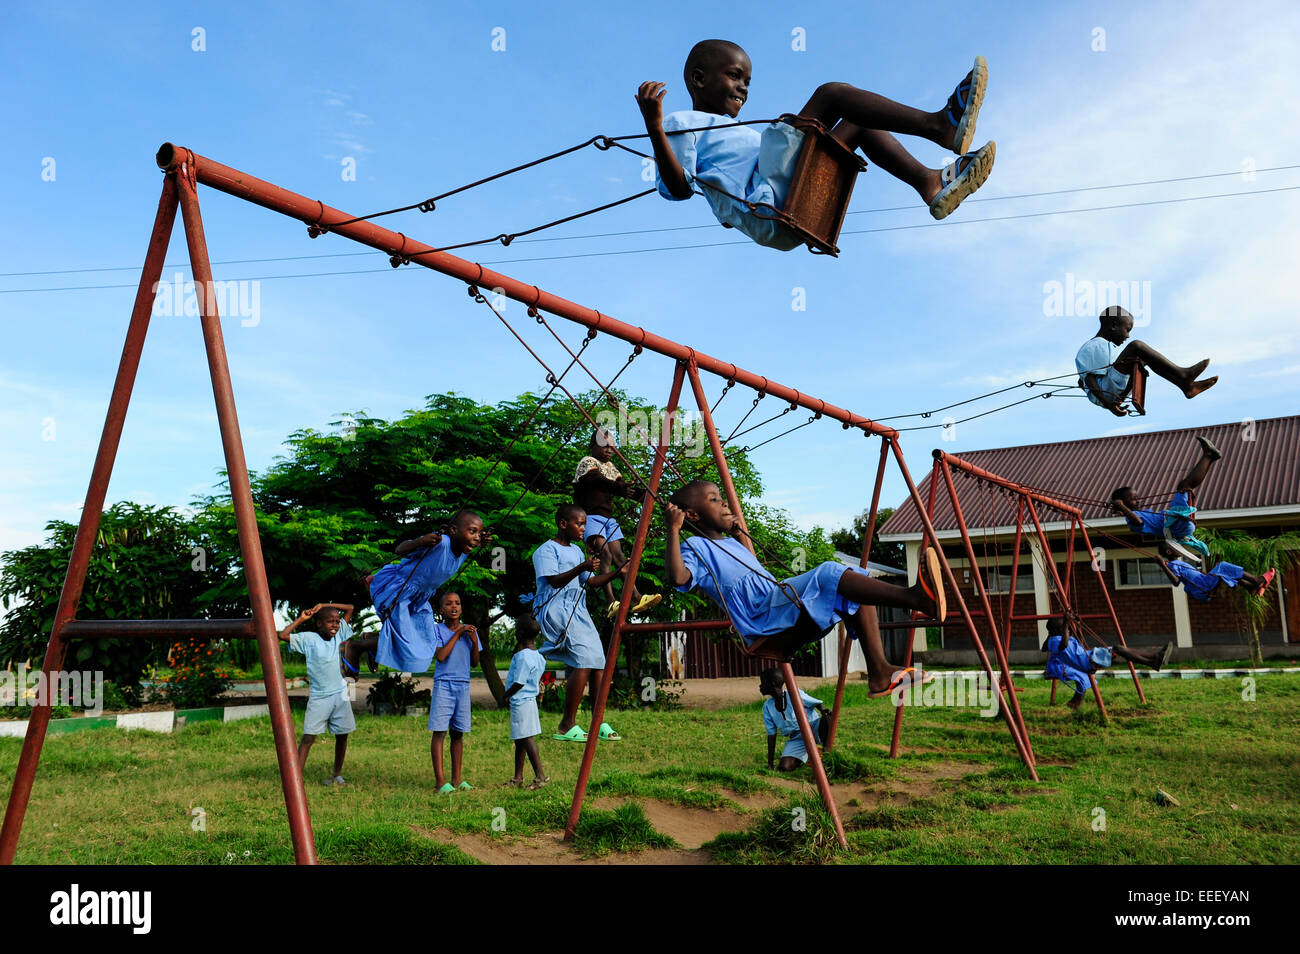 tanzania bukoba children play at swing of playground in school - Images Of Children Playing At School